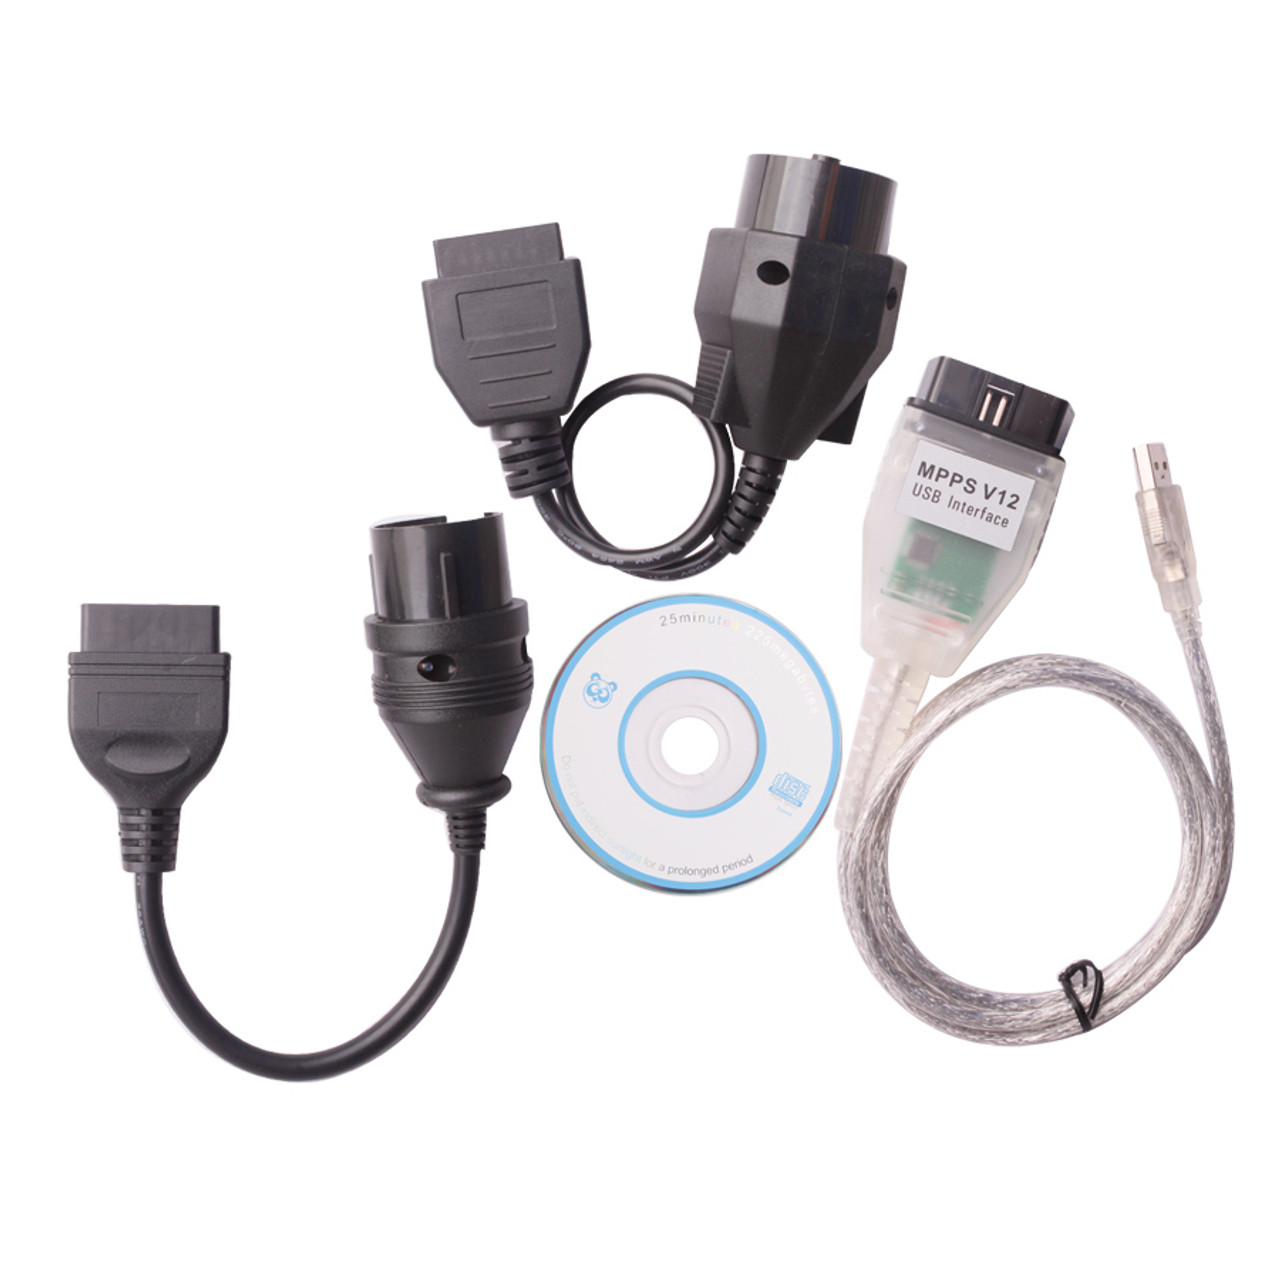 SMPS MPPS V12.06 ECU Chip Remap Tuning Cable + 20 Pin BMW & 38 Pin ...